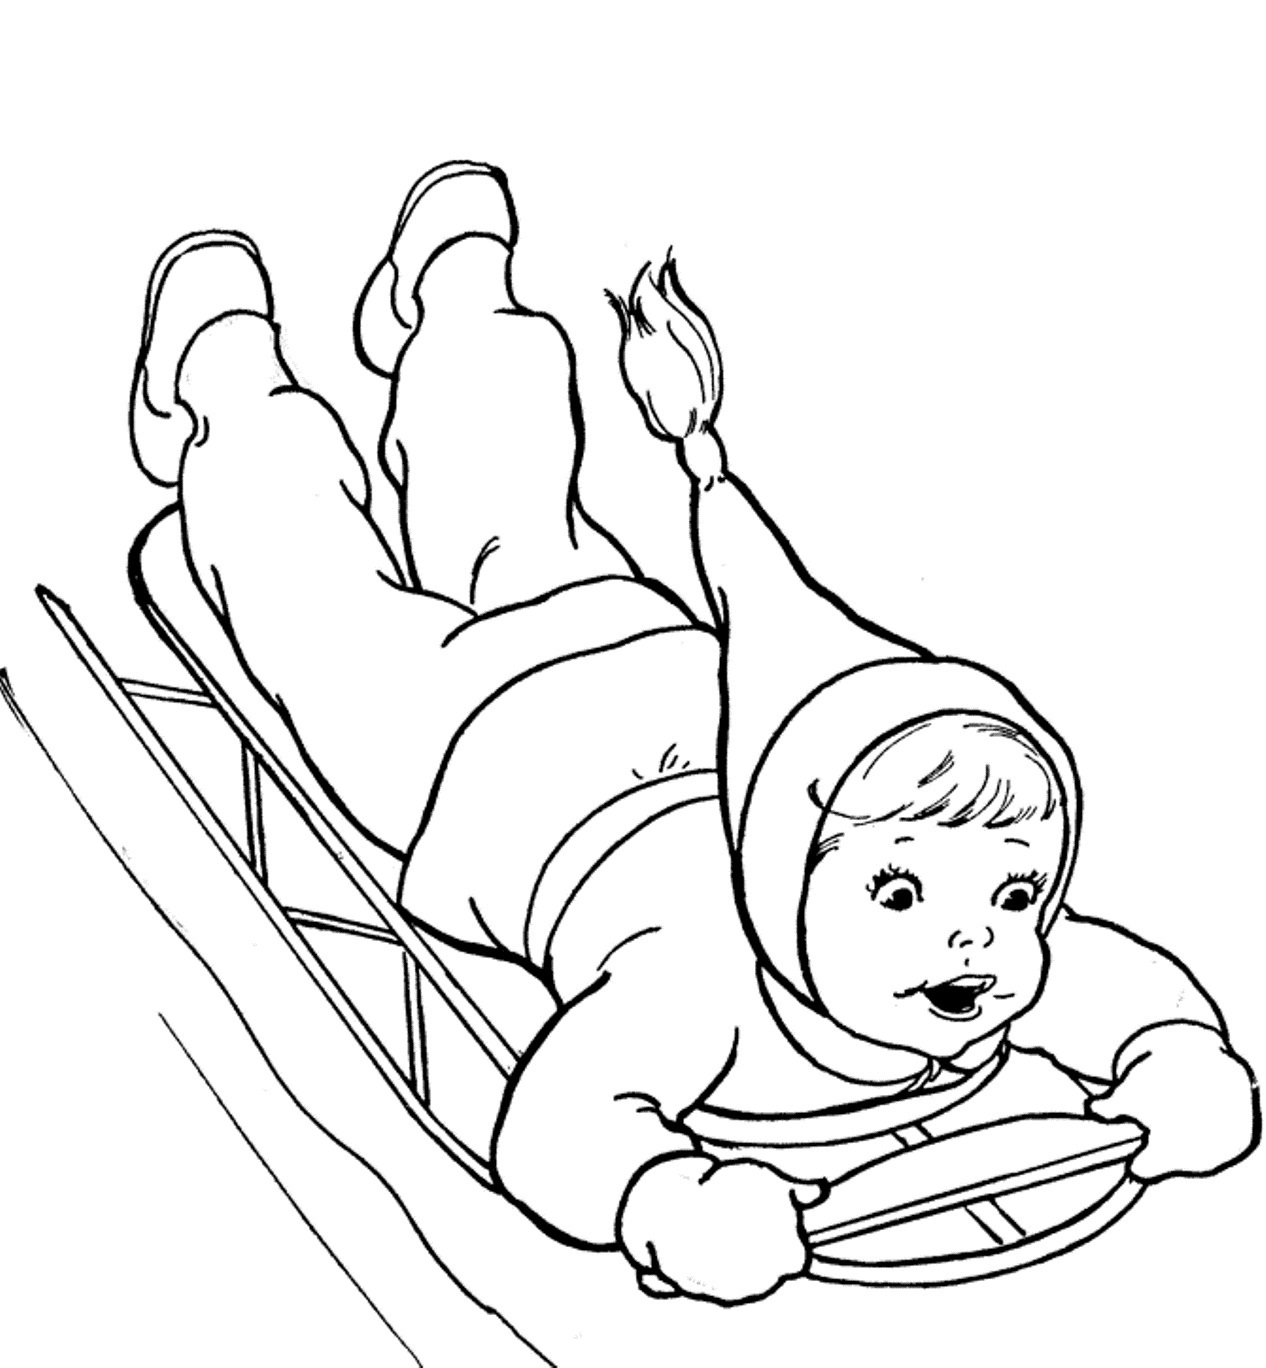 winter coloring pages kindergarten - photo#10